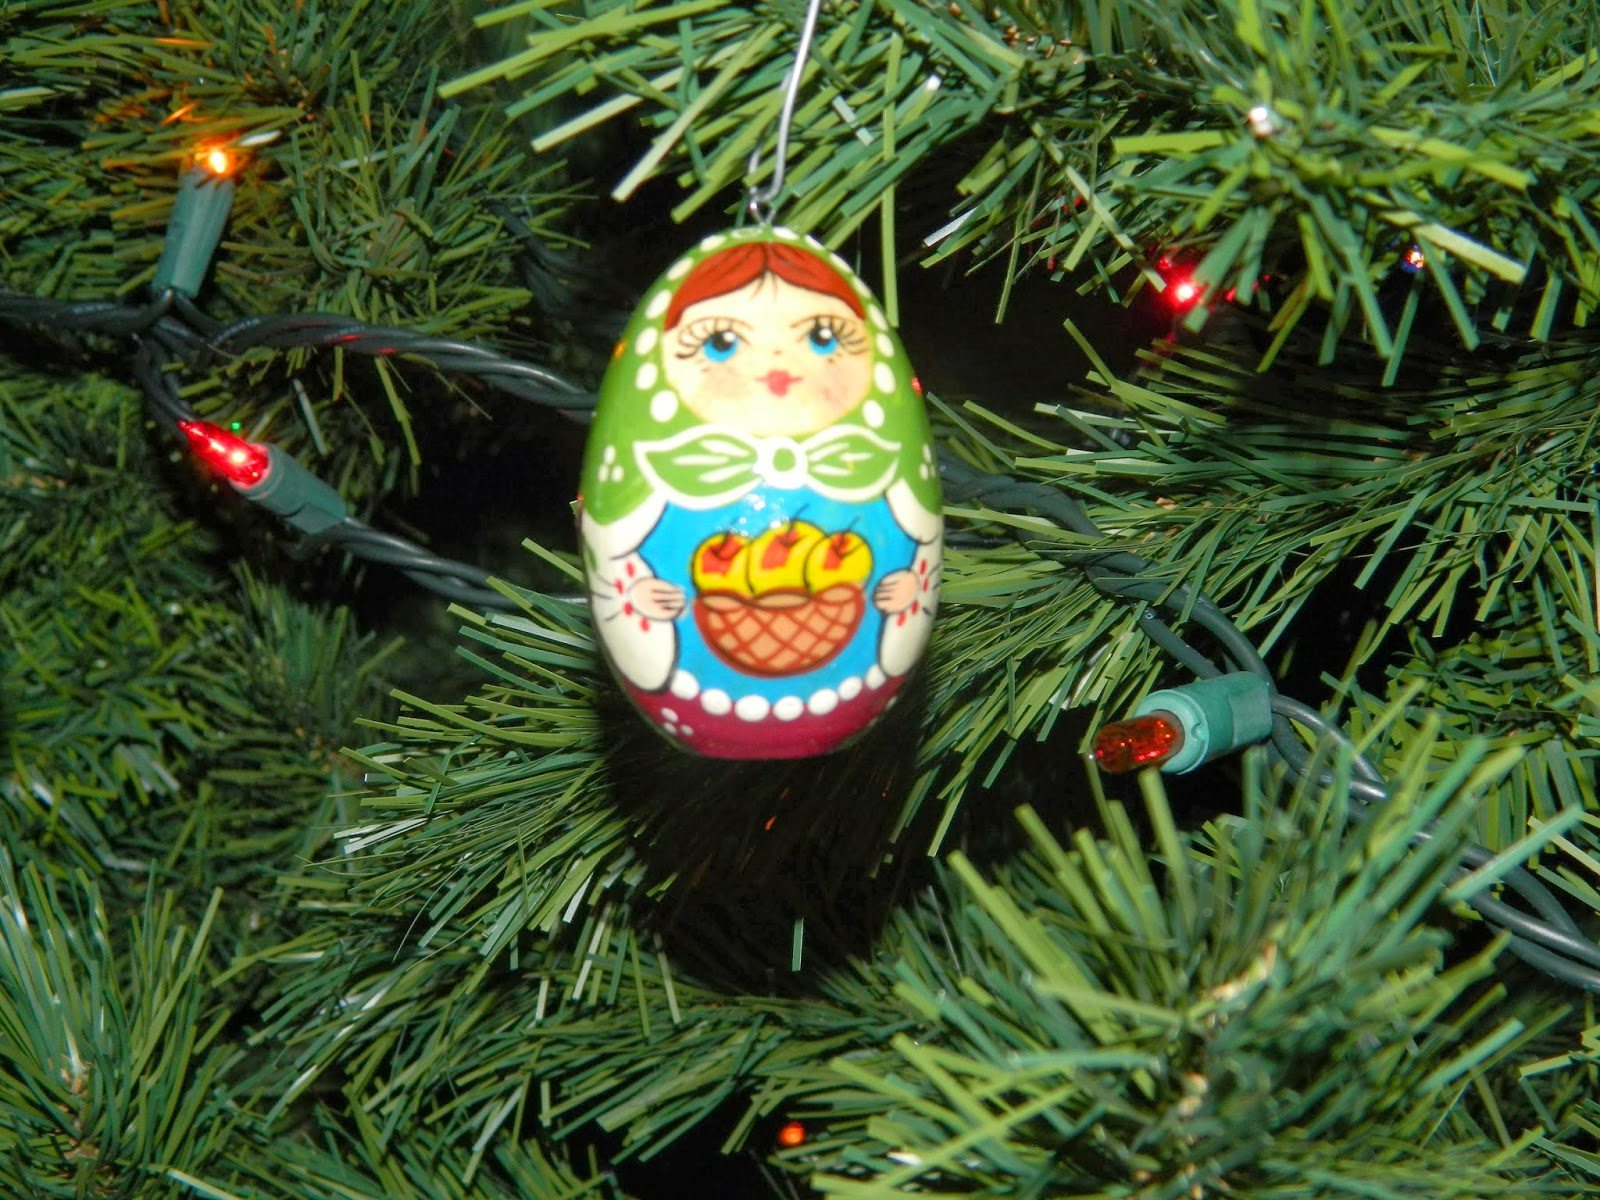 Ukrainian christmas ornaments - And This One We Got From Our Friend Wendy Bergstrom Who We Were Blessed To Meet While We Were In Kiev